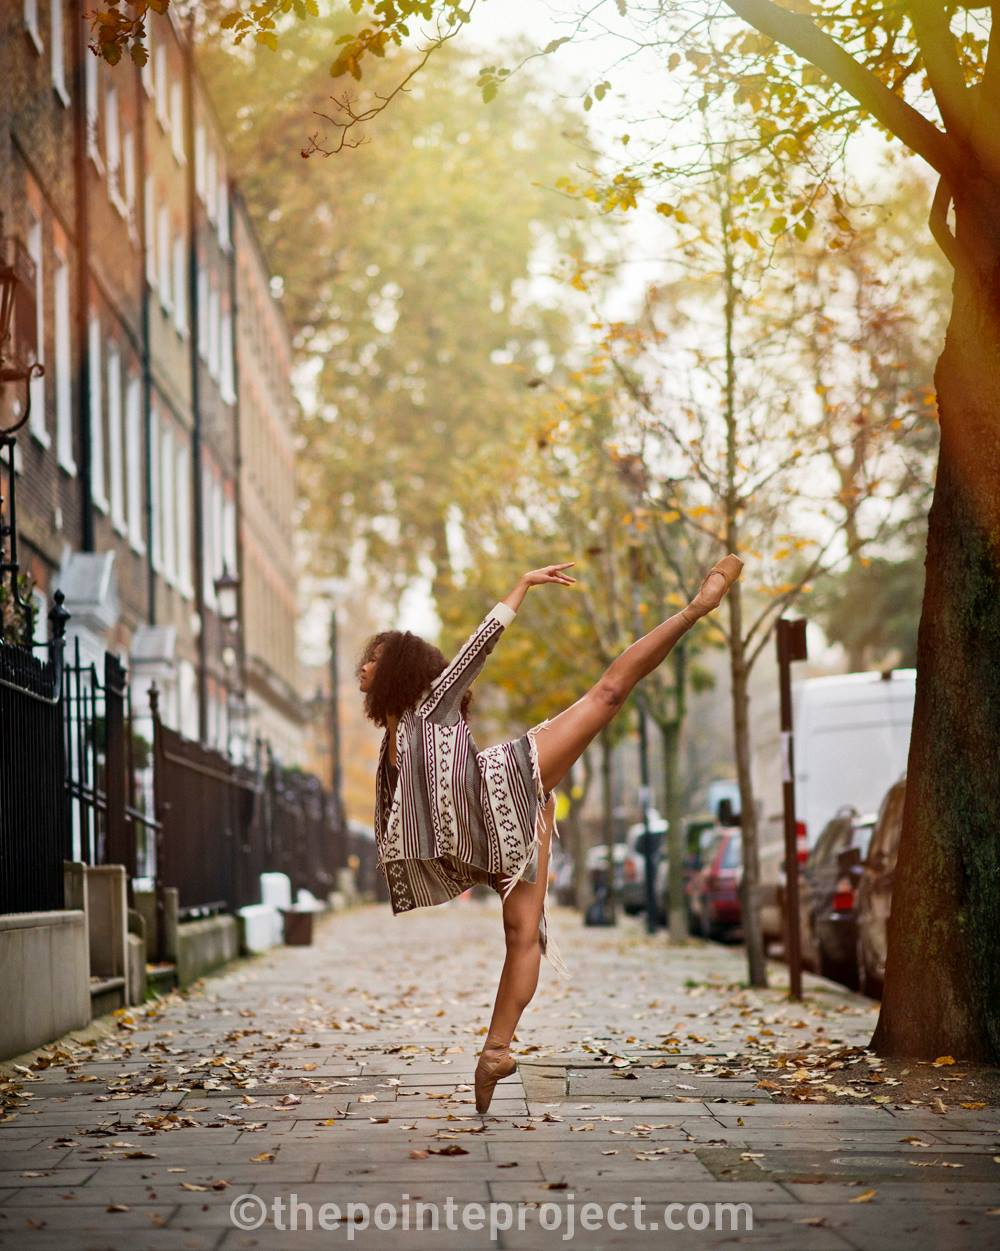 ballet photoshoot ballerina en pointe in london by pete bartlett similar to the ballerina project